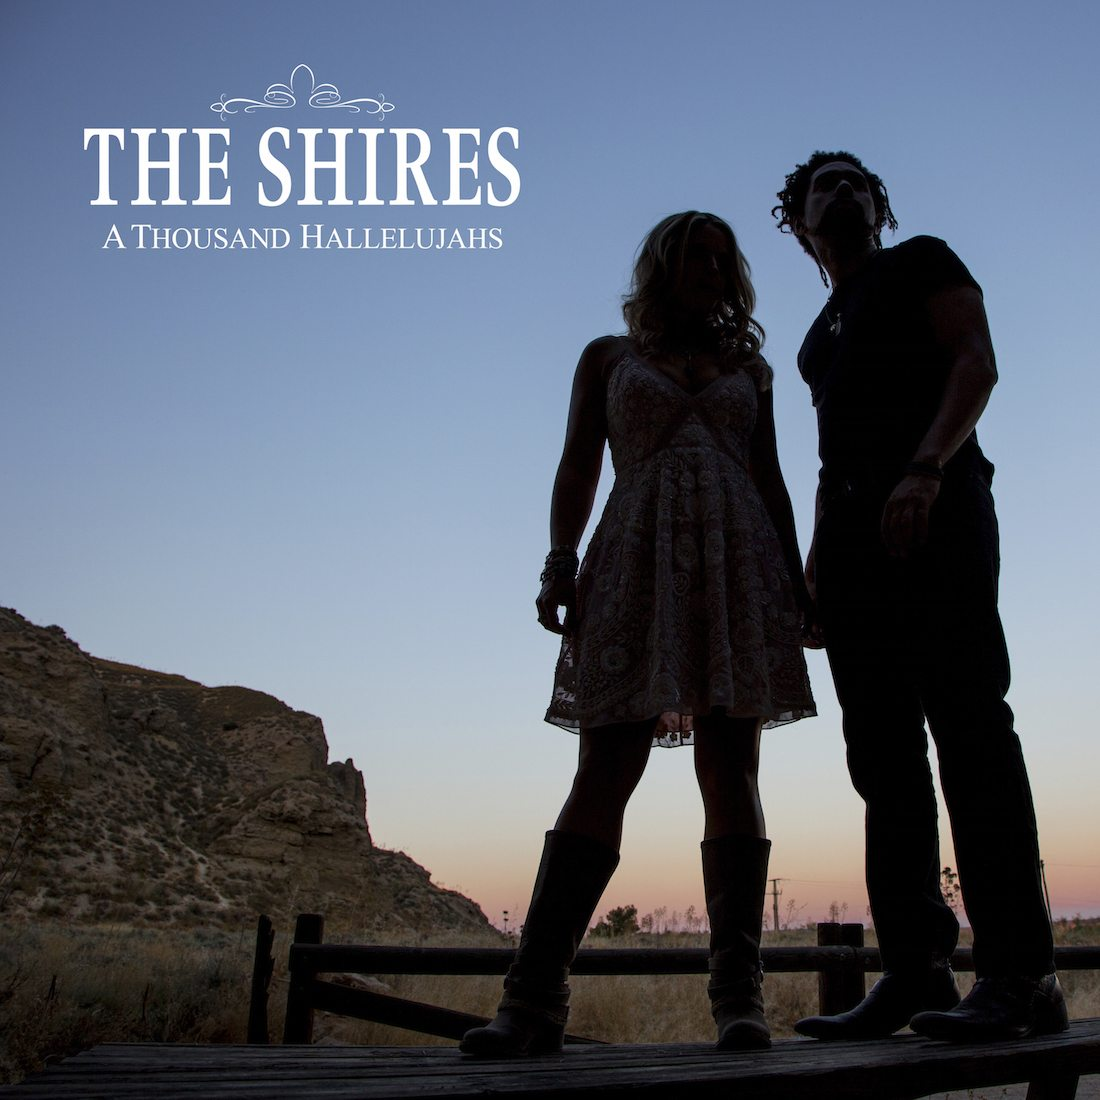 The Shires by Pip shot in Madrid, Spain for Decca Records